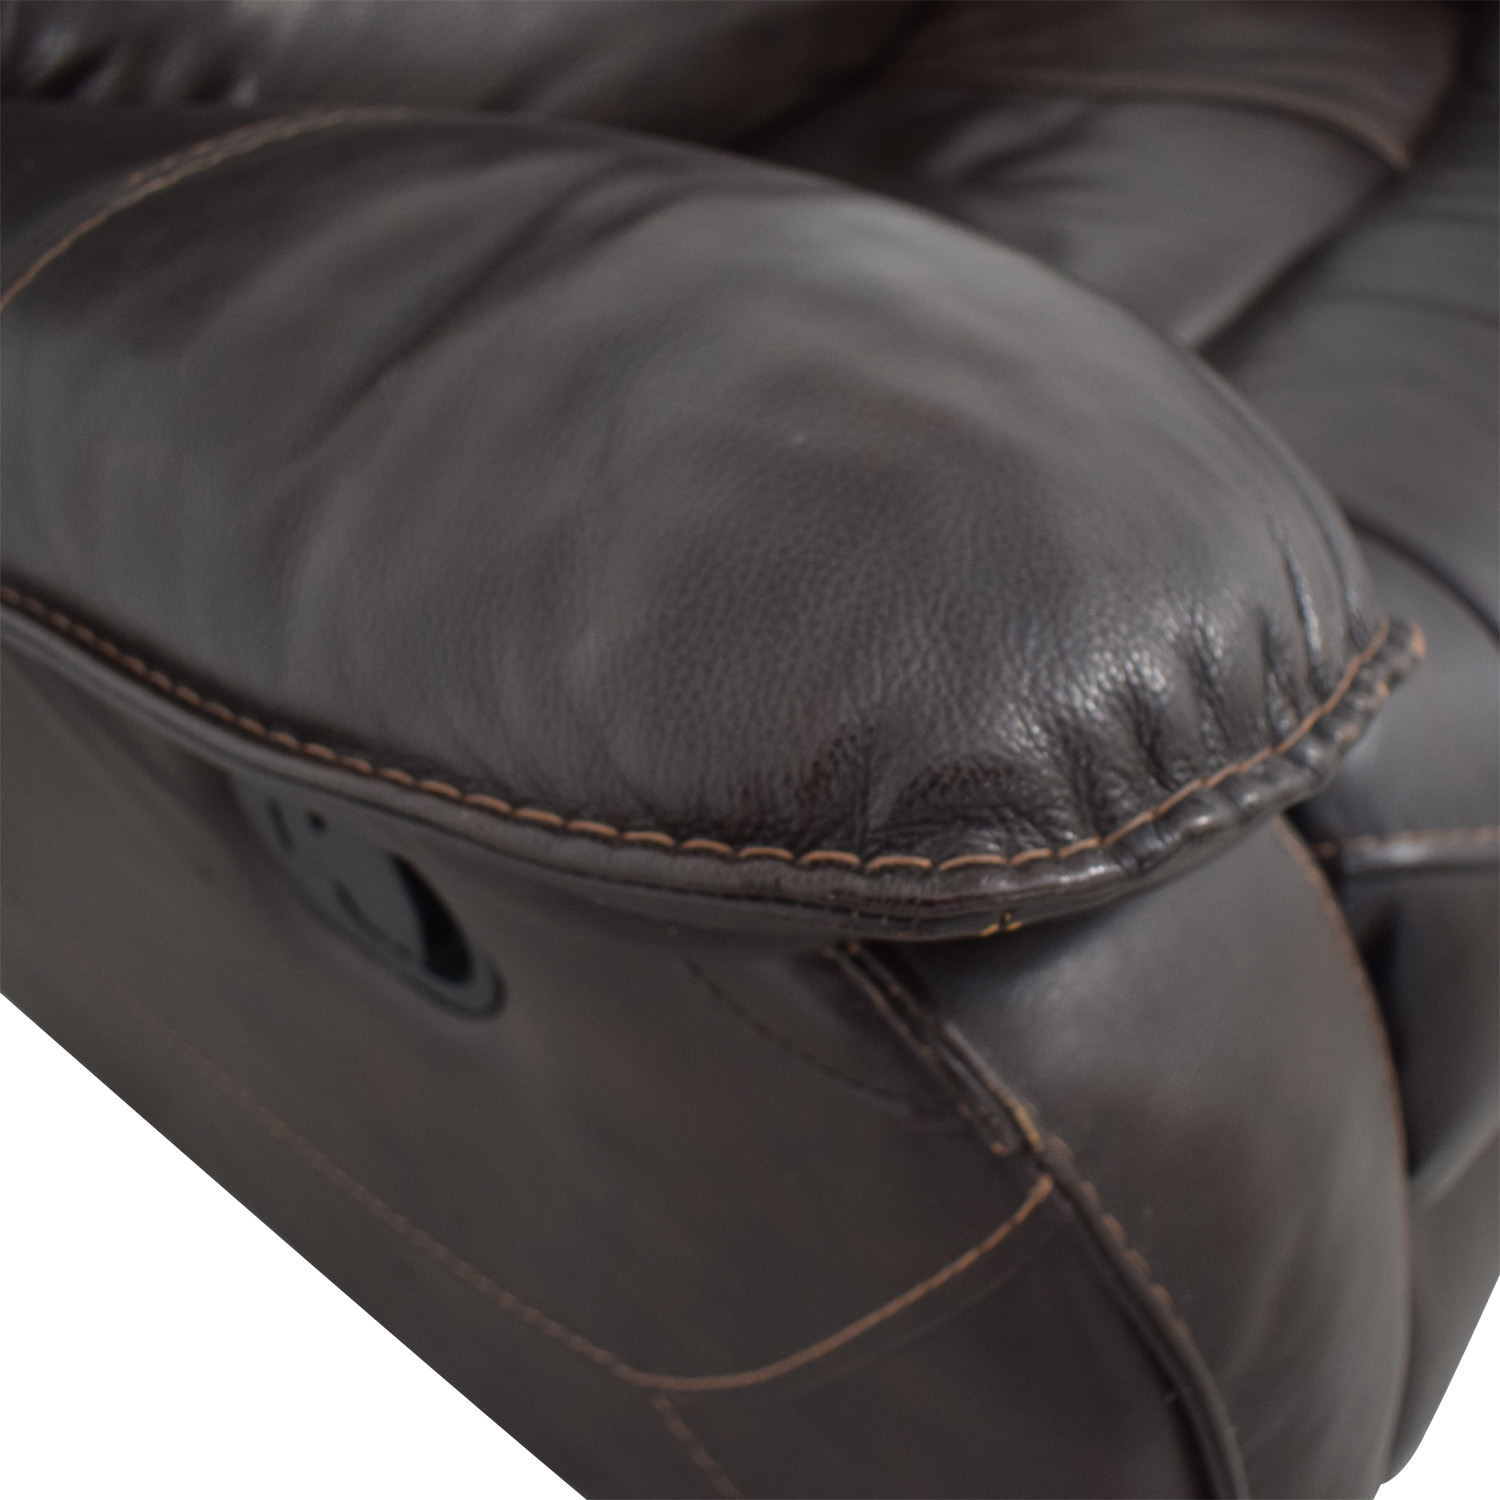 Macy's Macy's Brown Leather Recliner Chair